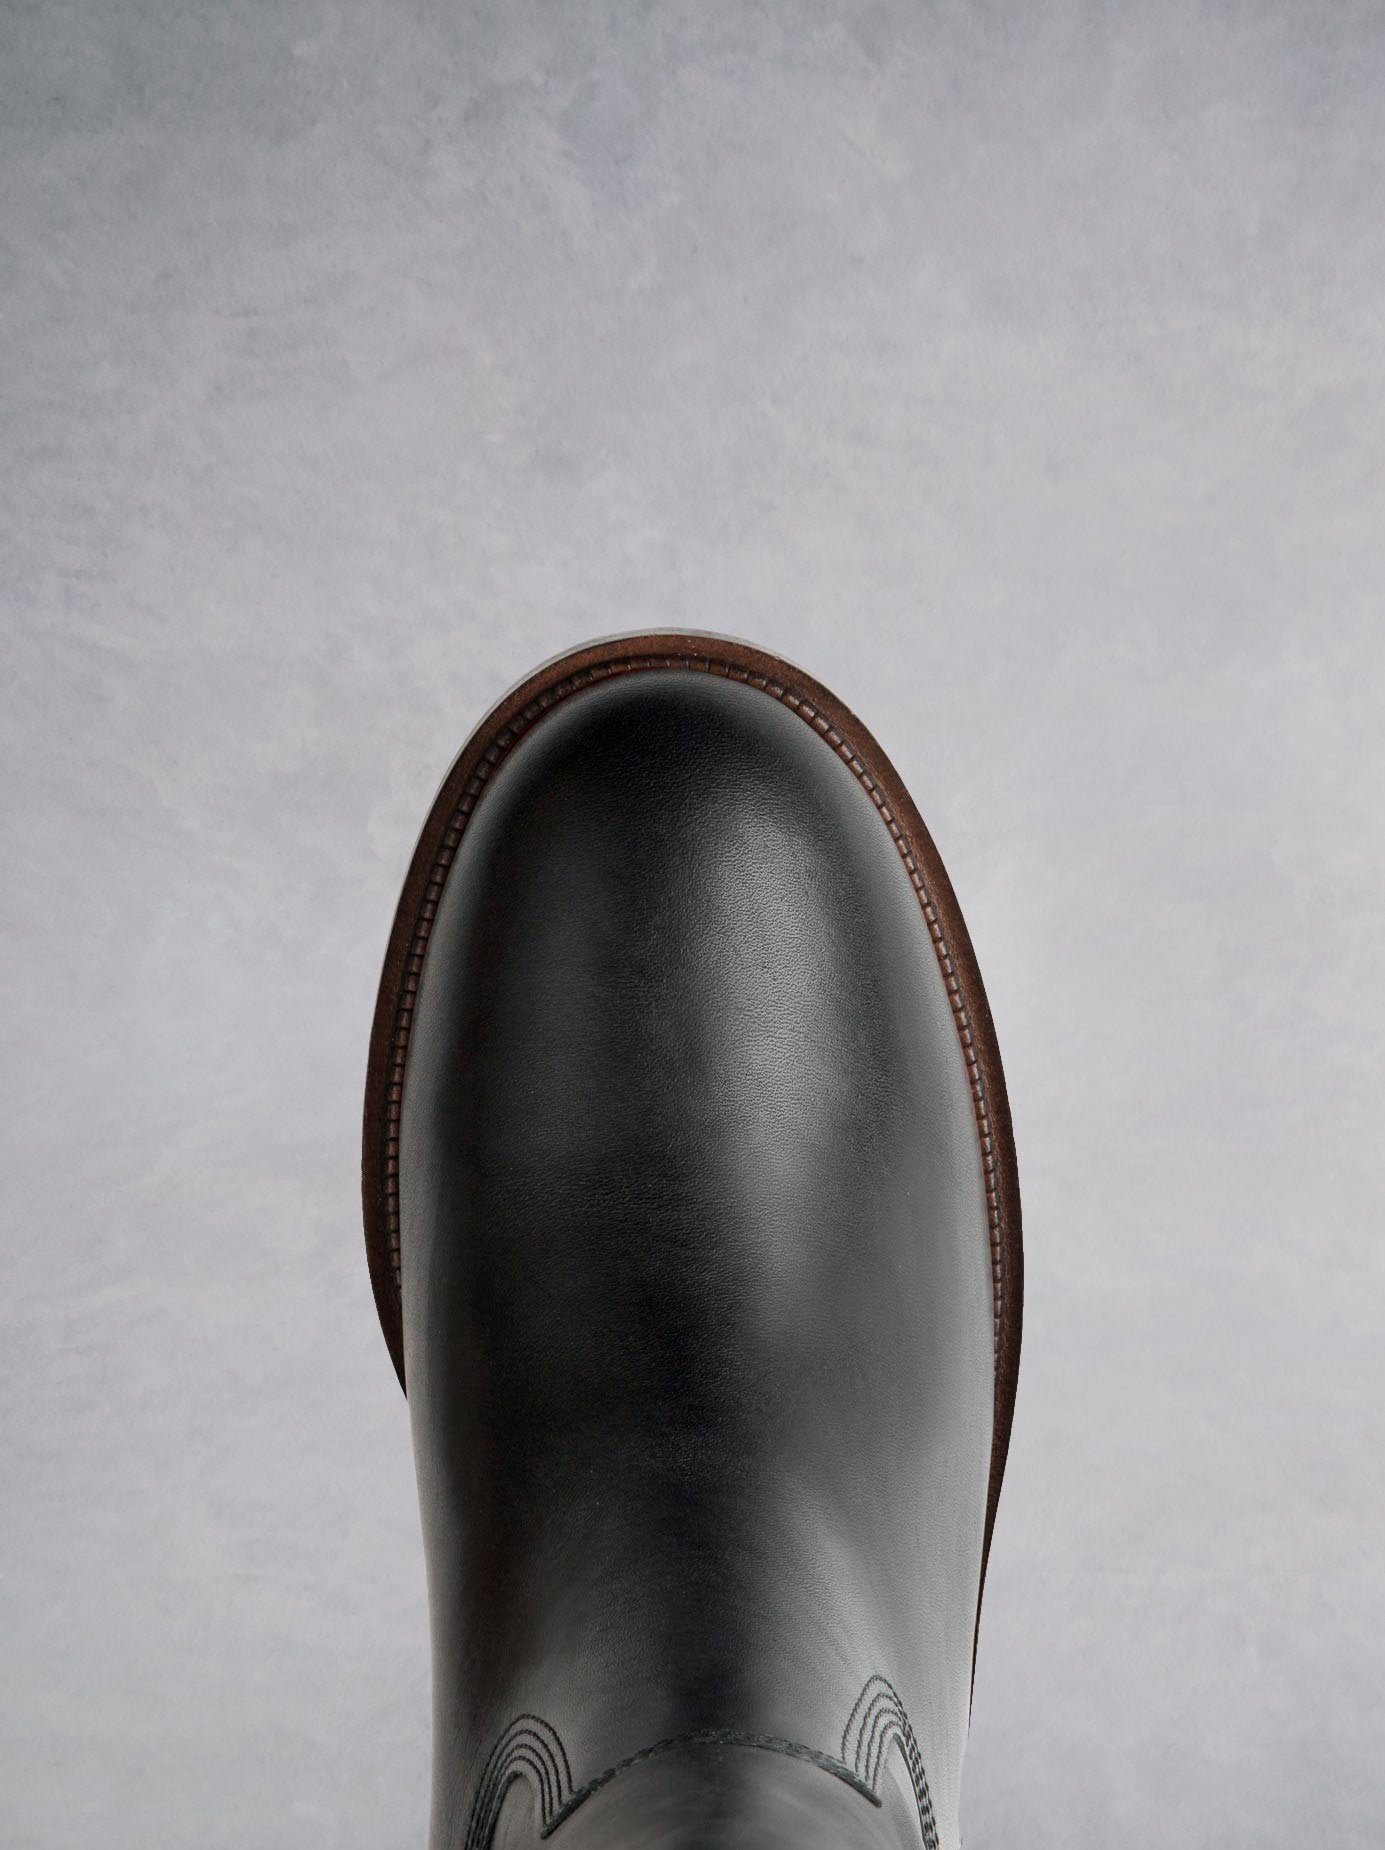 Paintbox Black Leather - Premium leather pull-on riding boot - web exclusive.